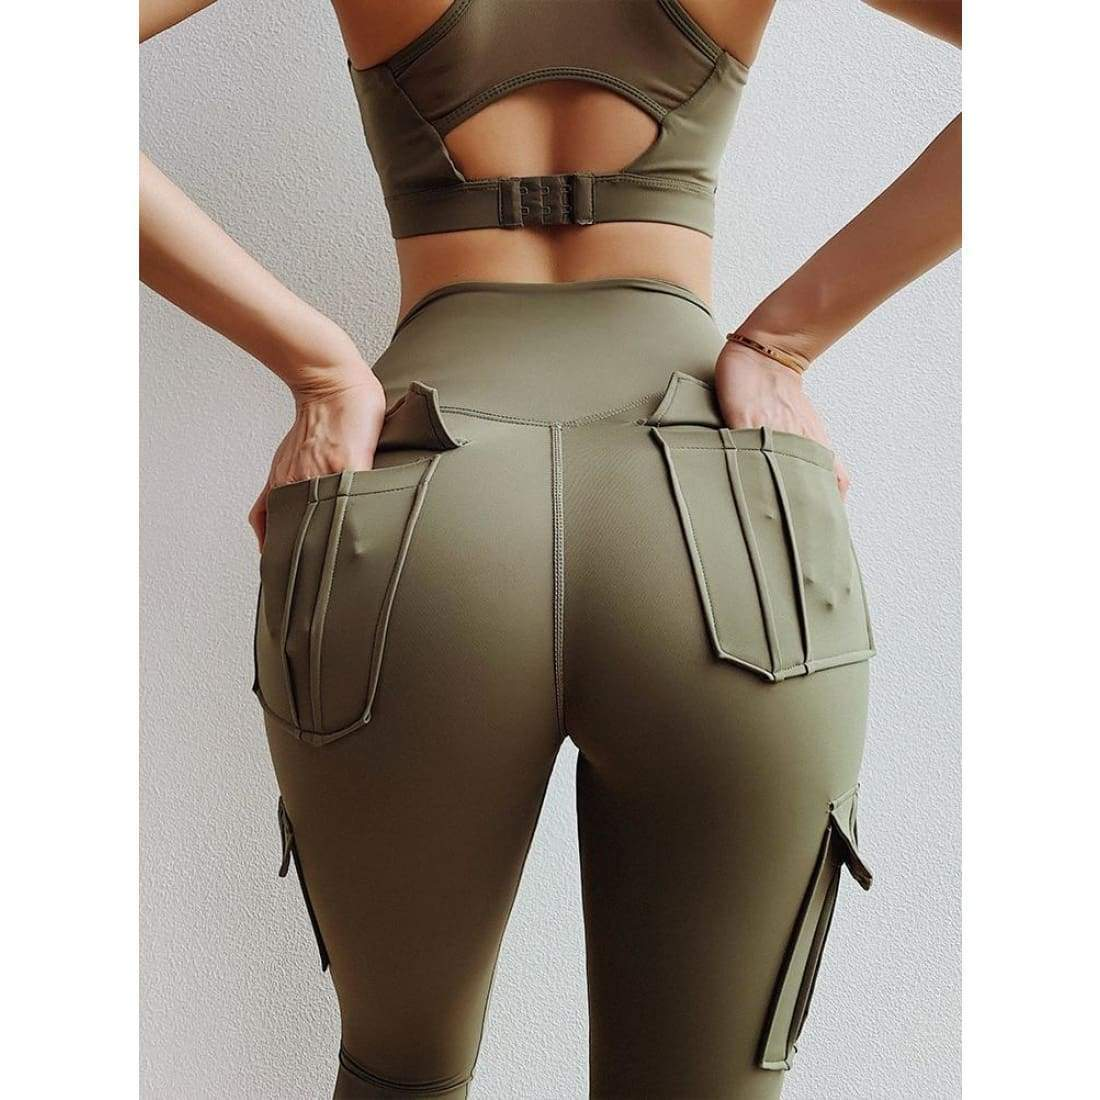 Sculpt cargo leggings - XL / Army Green - high waist pockets yoga sport workout running